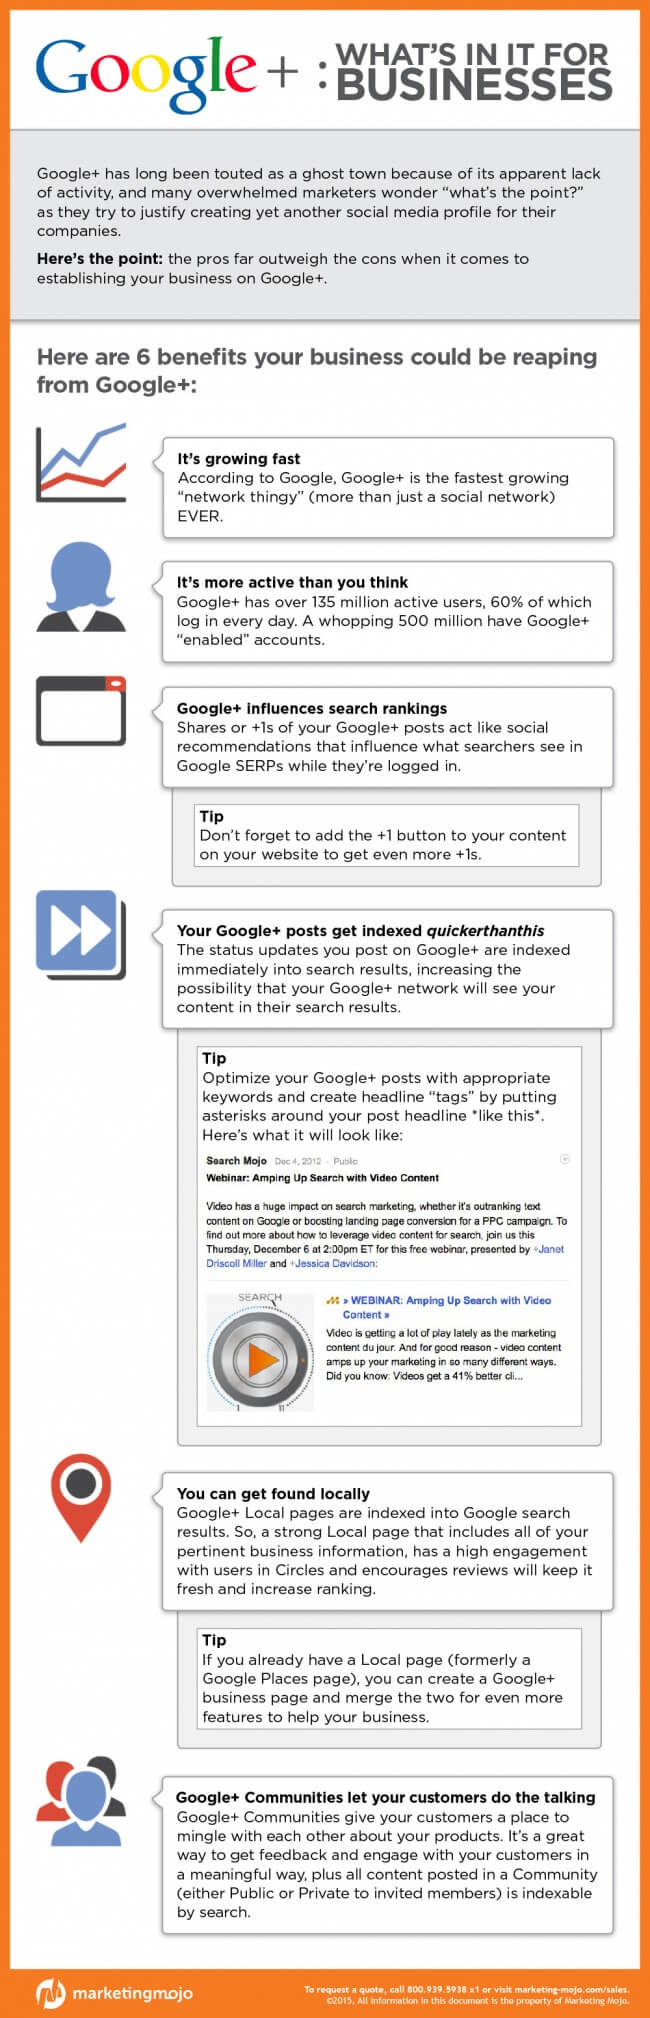 Marketing-Mojo_GooglePlus_for_Business_Infographic